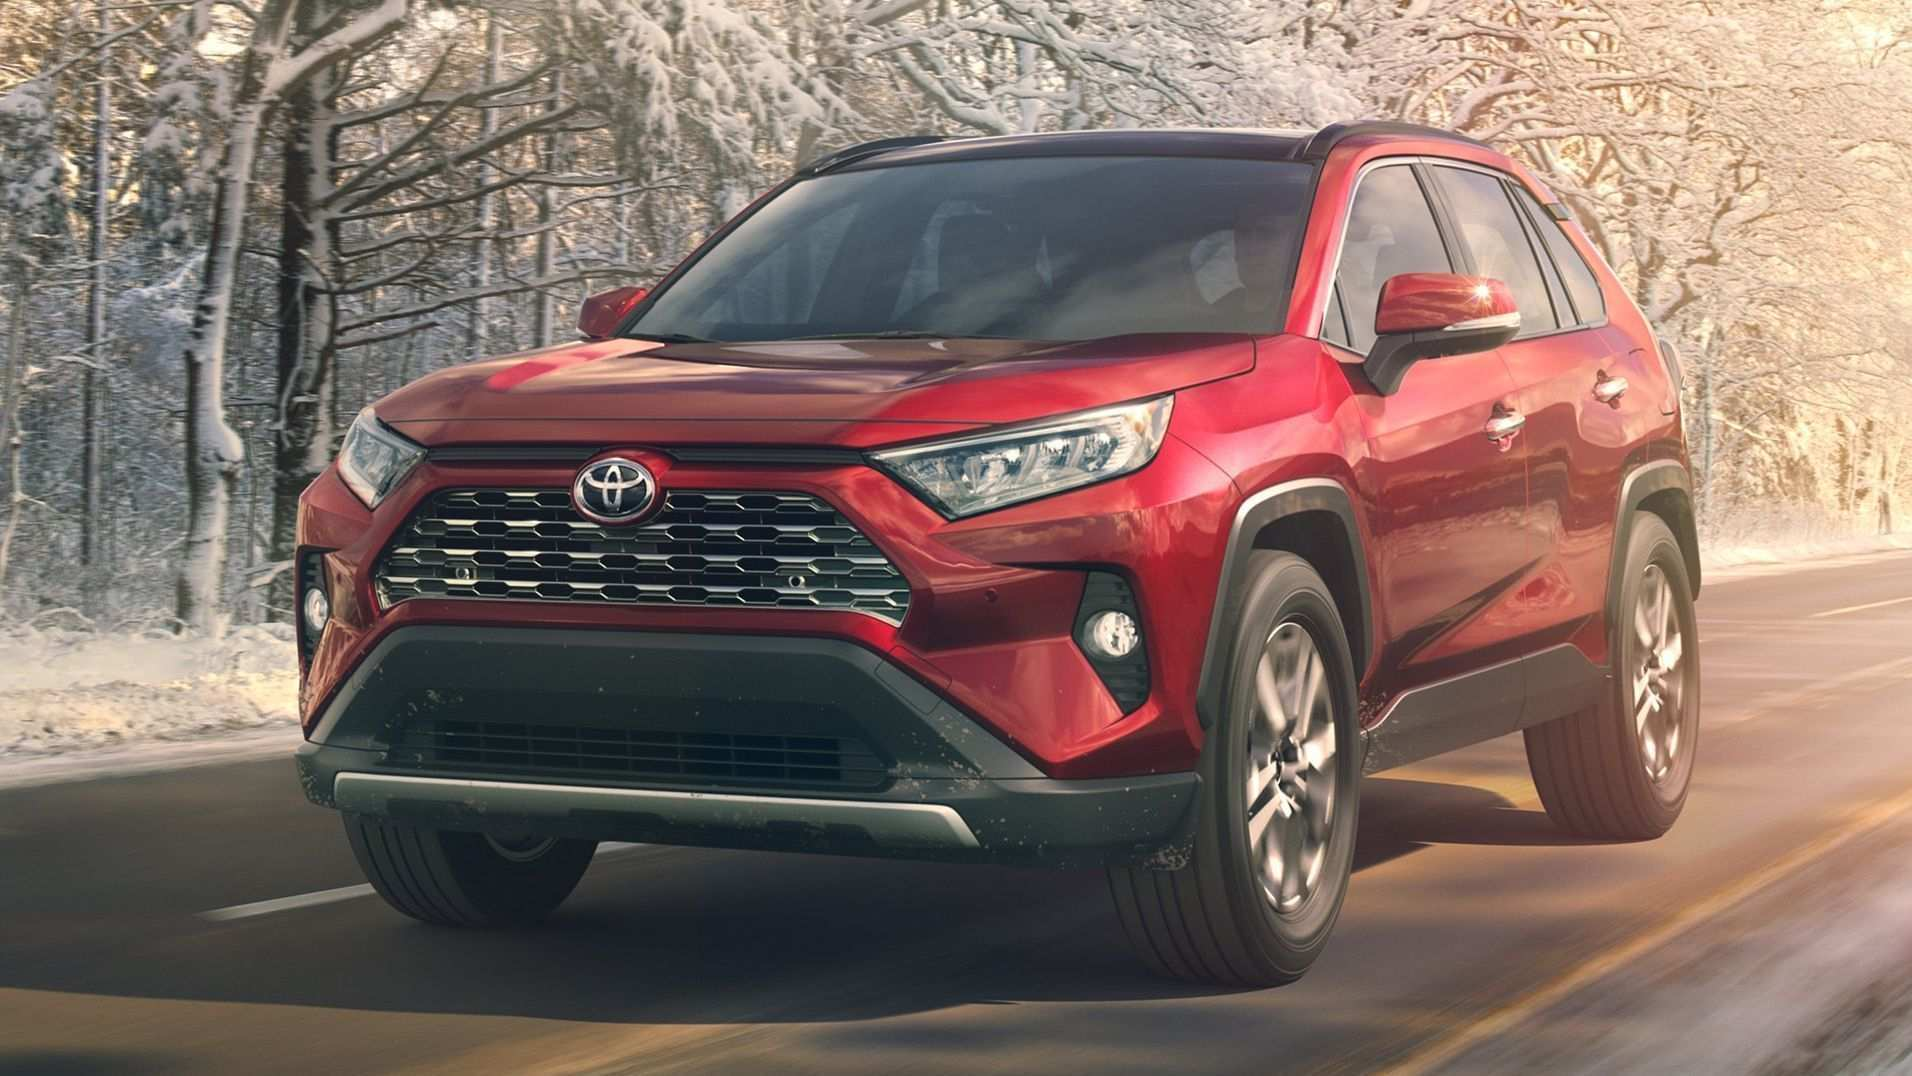 18 Gallery of The Toyota 2019 En Mexico Specs And Review Exterior and Interior with The Toyota 2019 En Mexico Specs And Review